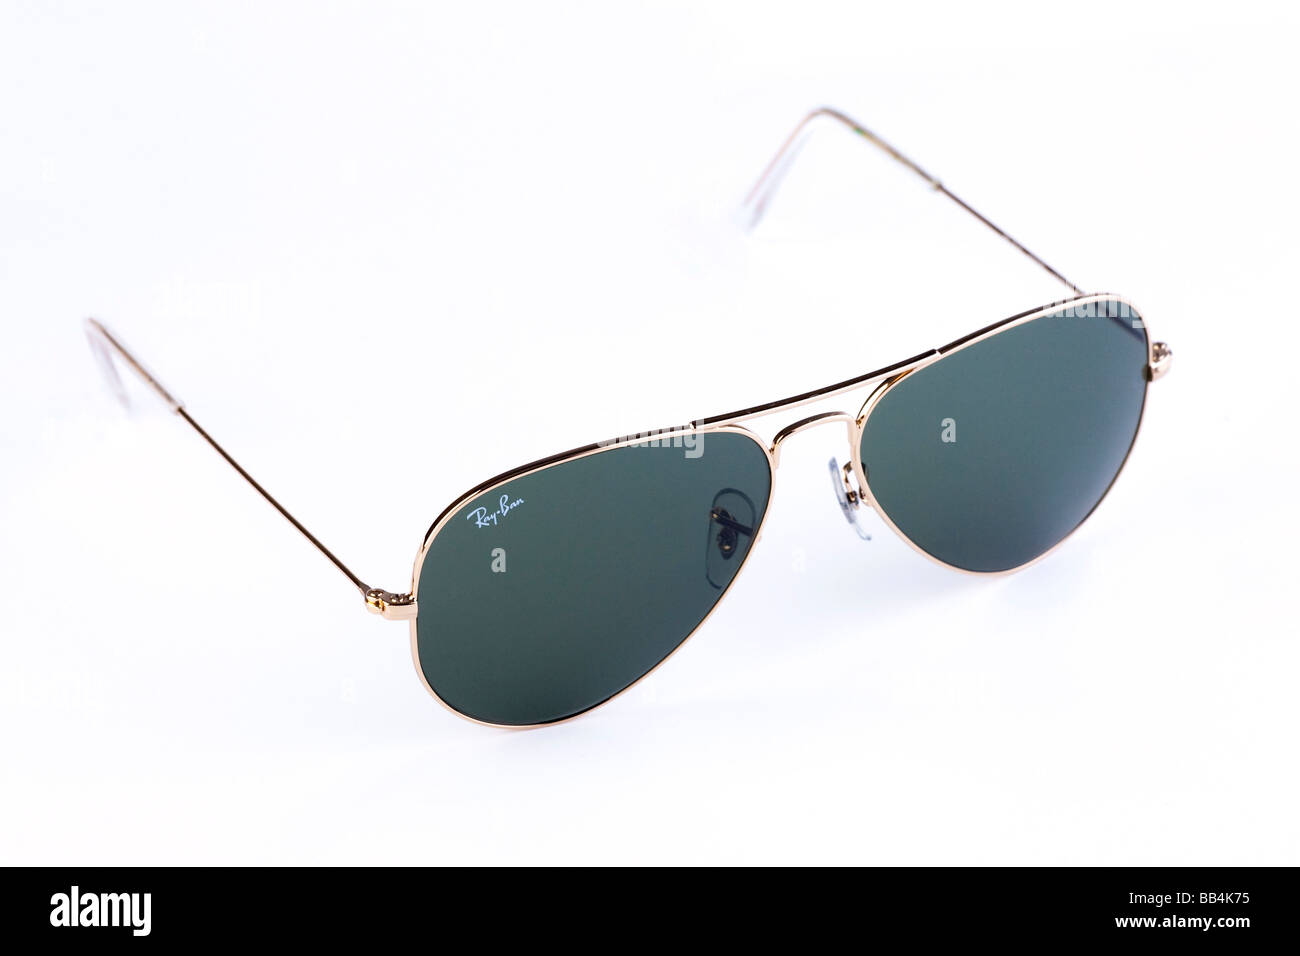 bd25ad8534 Ray-Ban Aviator sunglasses Banque D'Images, Photo Stock: 24074489 ...